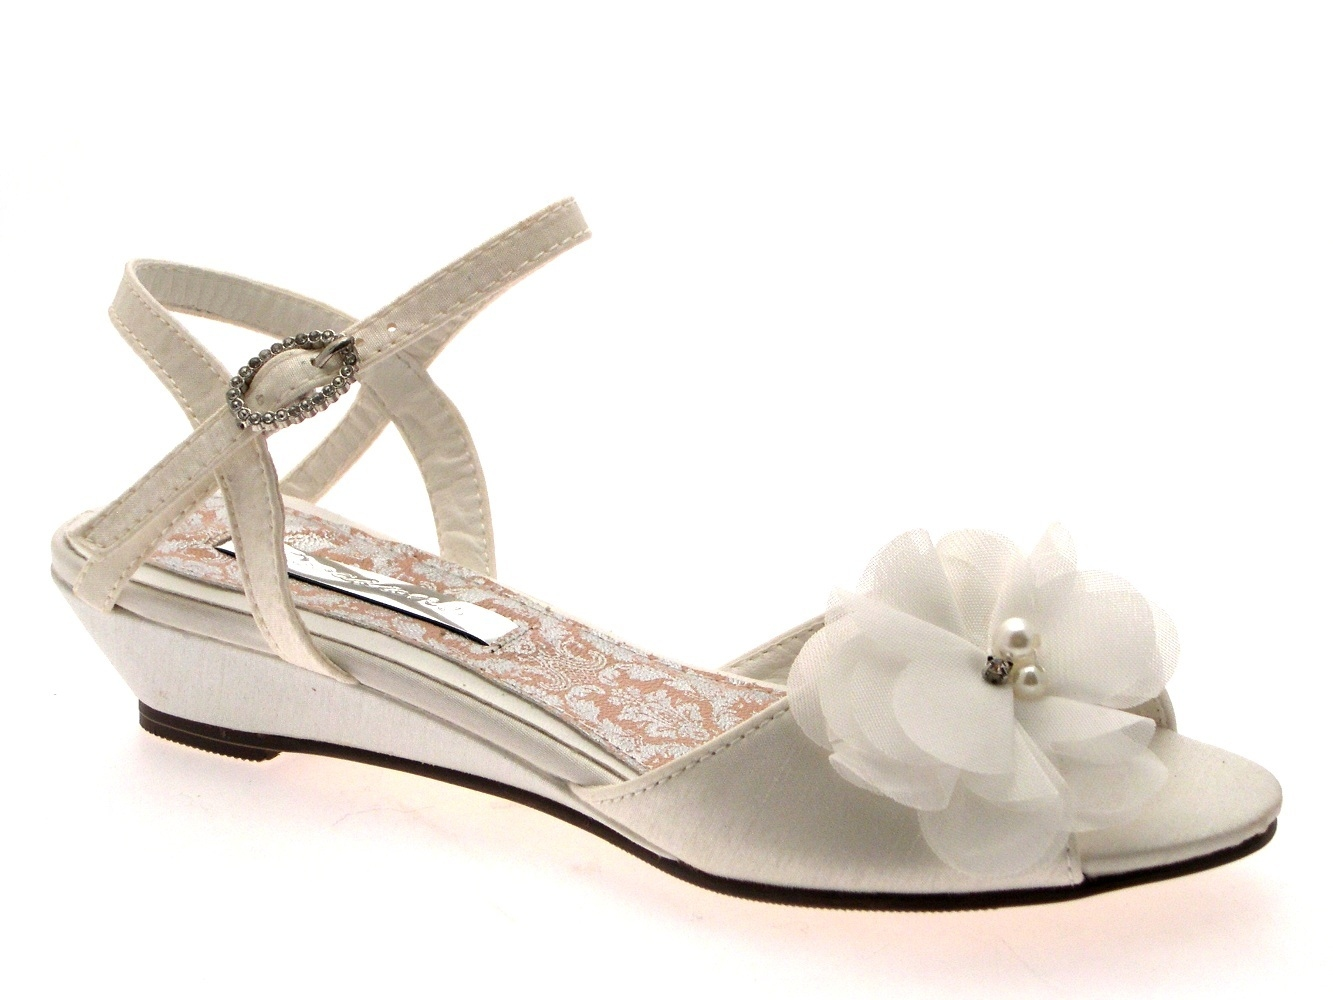 Sandals bridesmaid shoes